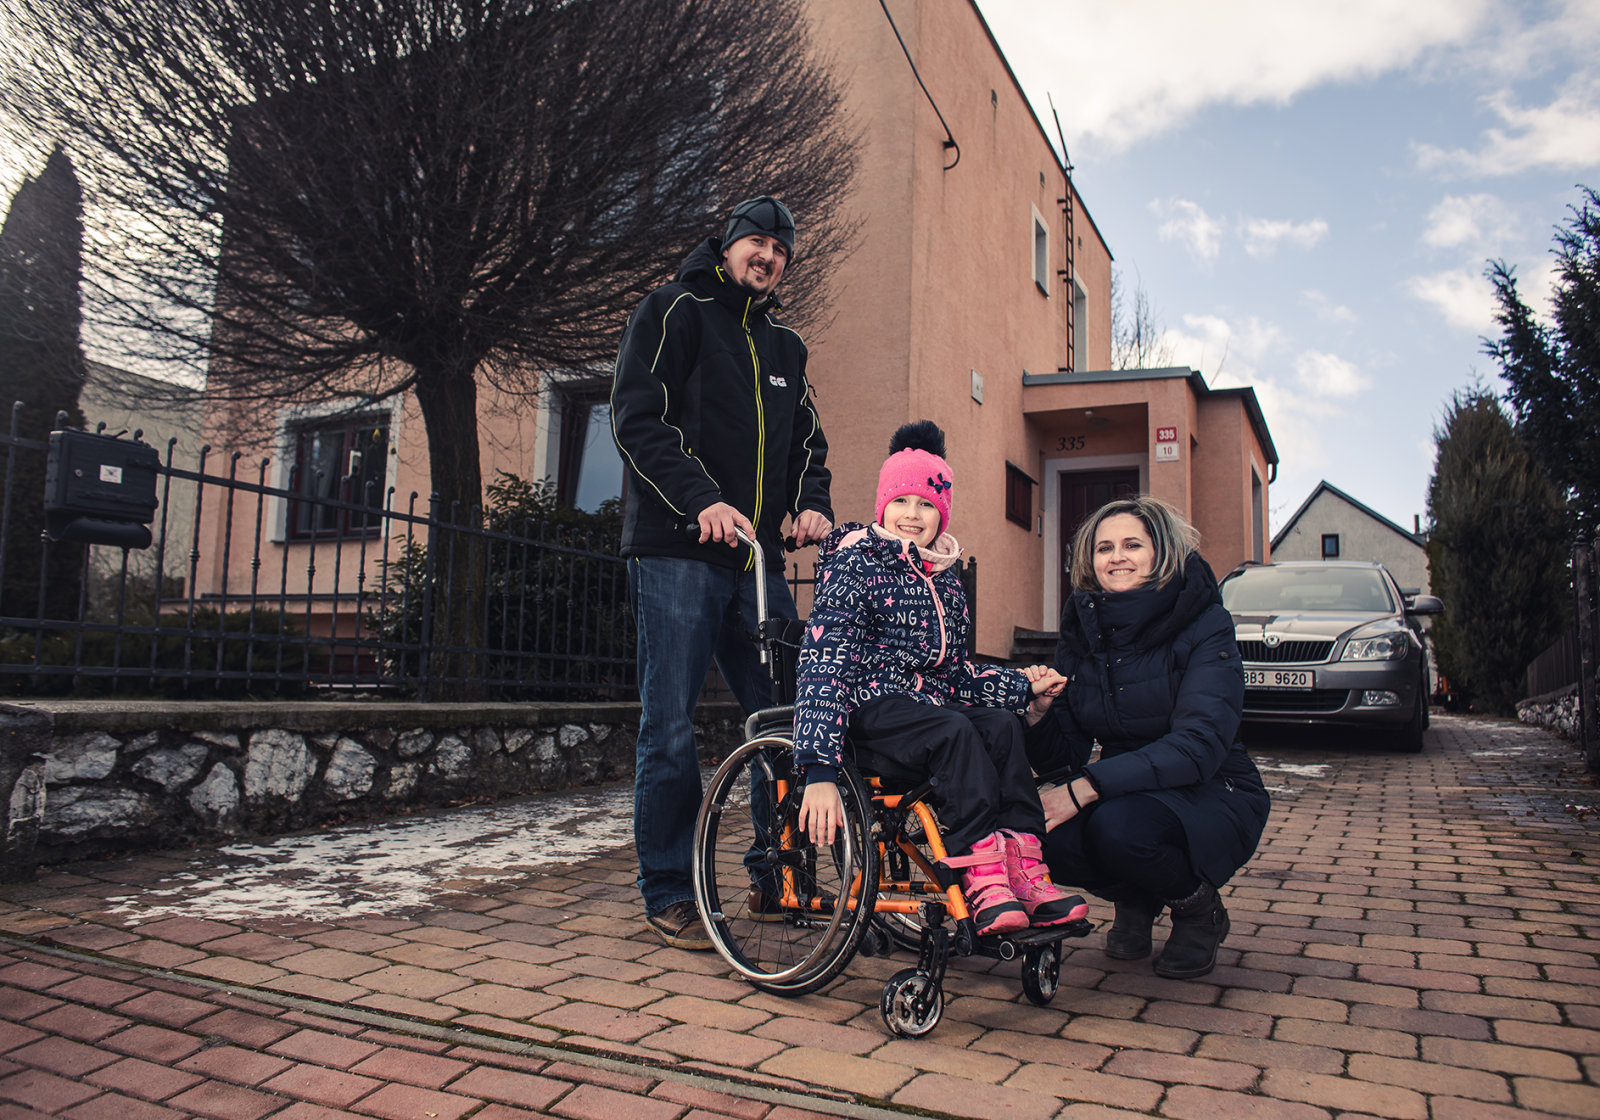 We contributed to Evička's daily rehabilitation with a therapist